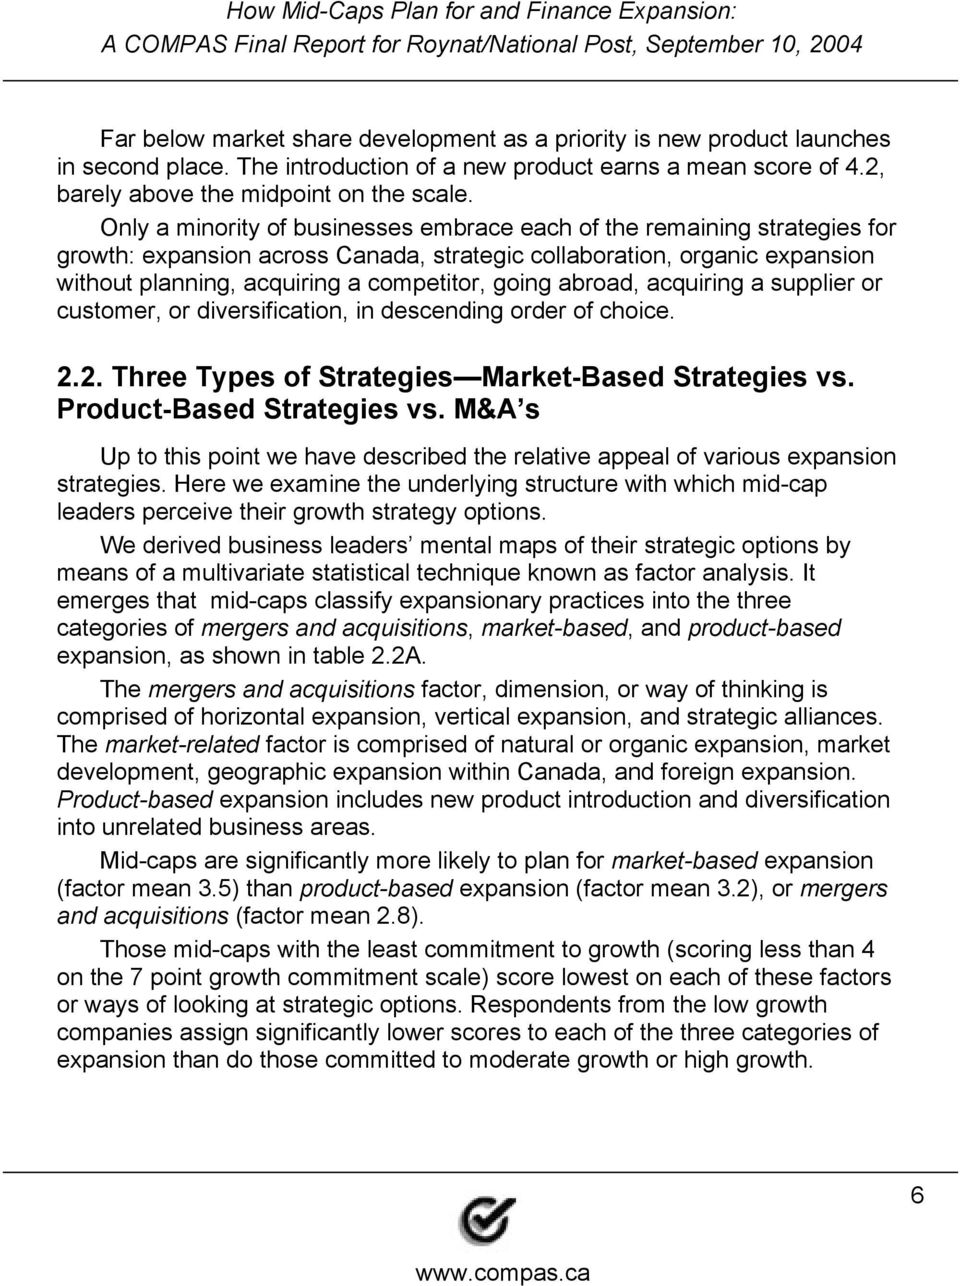 abroad, acquiring a supplier or customer, or diversification, in descending order of choice. 2.2. Three Types of Strategies Market-Based Strategies vs. Product-Based Strategies vs.